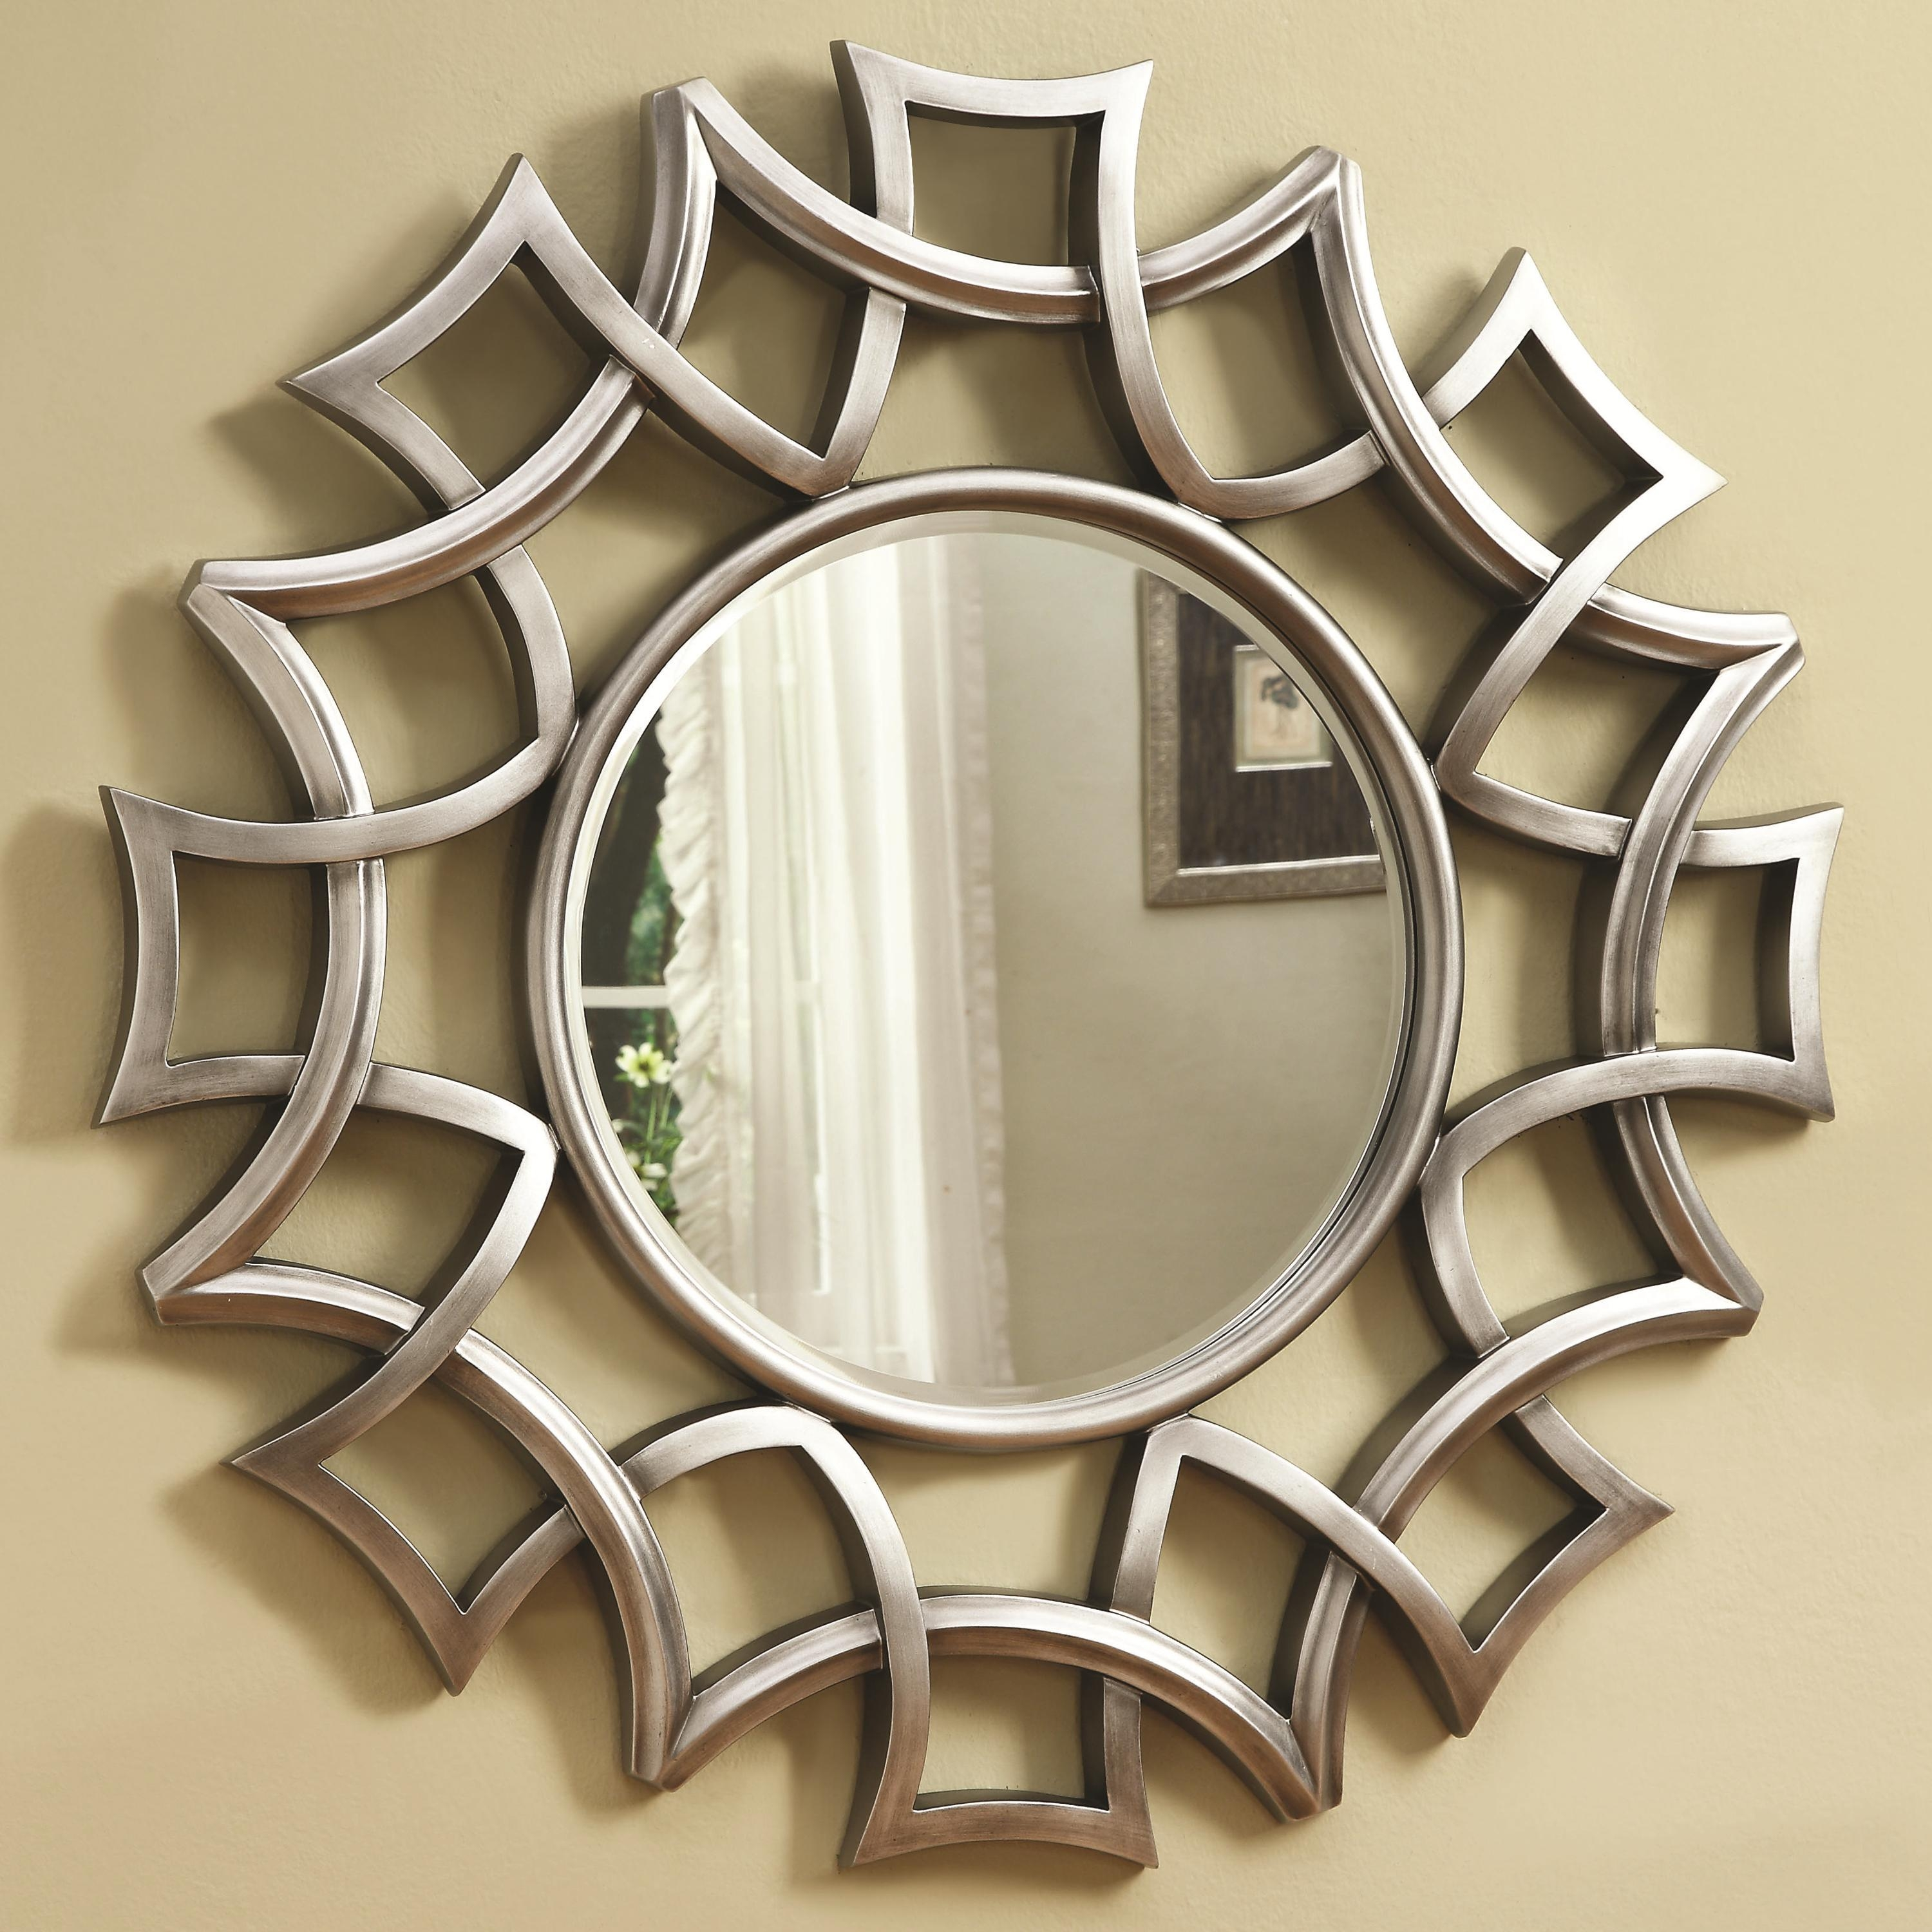 Large Round Contemporary Mirrors Maple Lawn Best Home Magazine With Regard To Contempory Mirrors (Image 13 of 15)